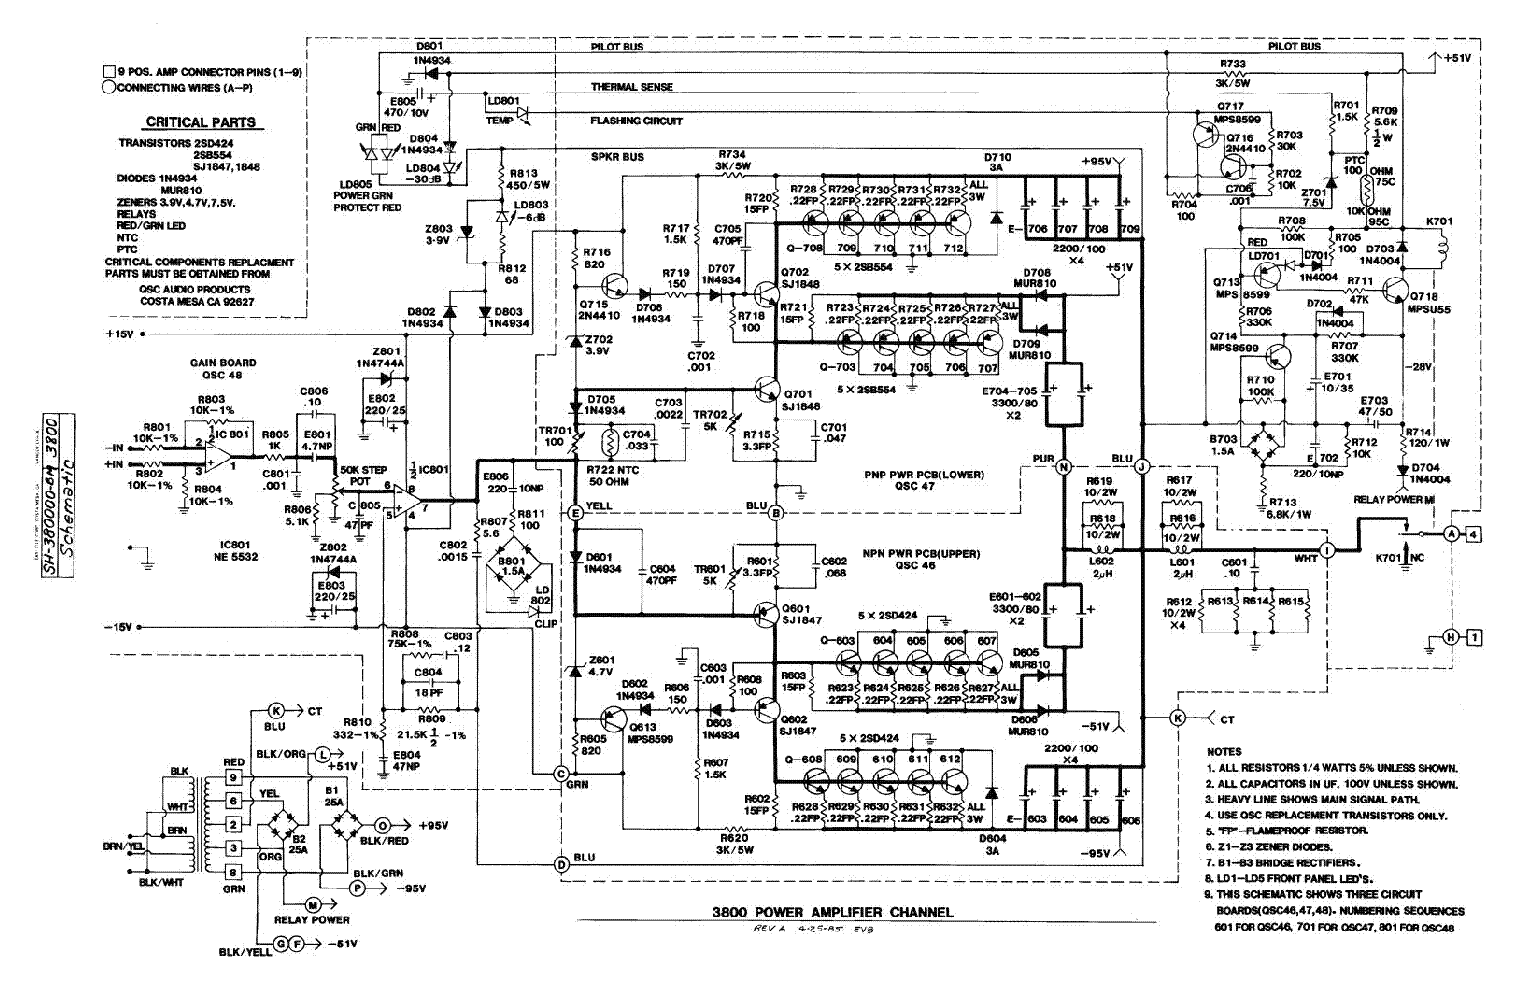 Ford Maverick Wiring Diagram Get Free Image About Ford